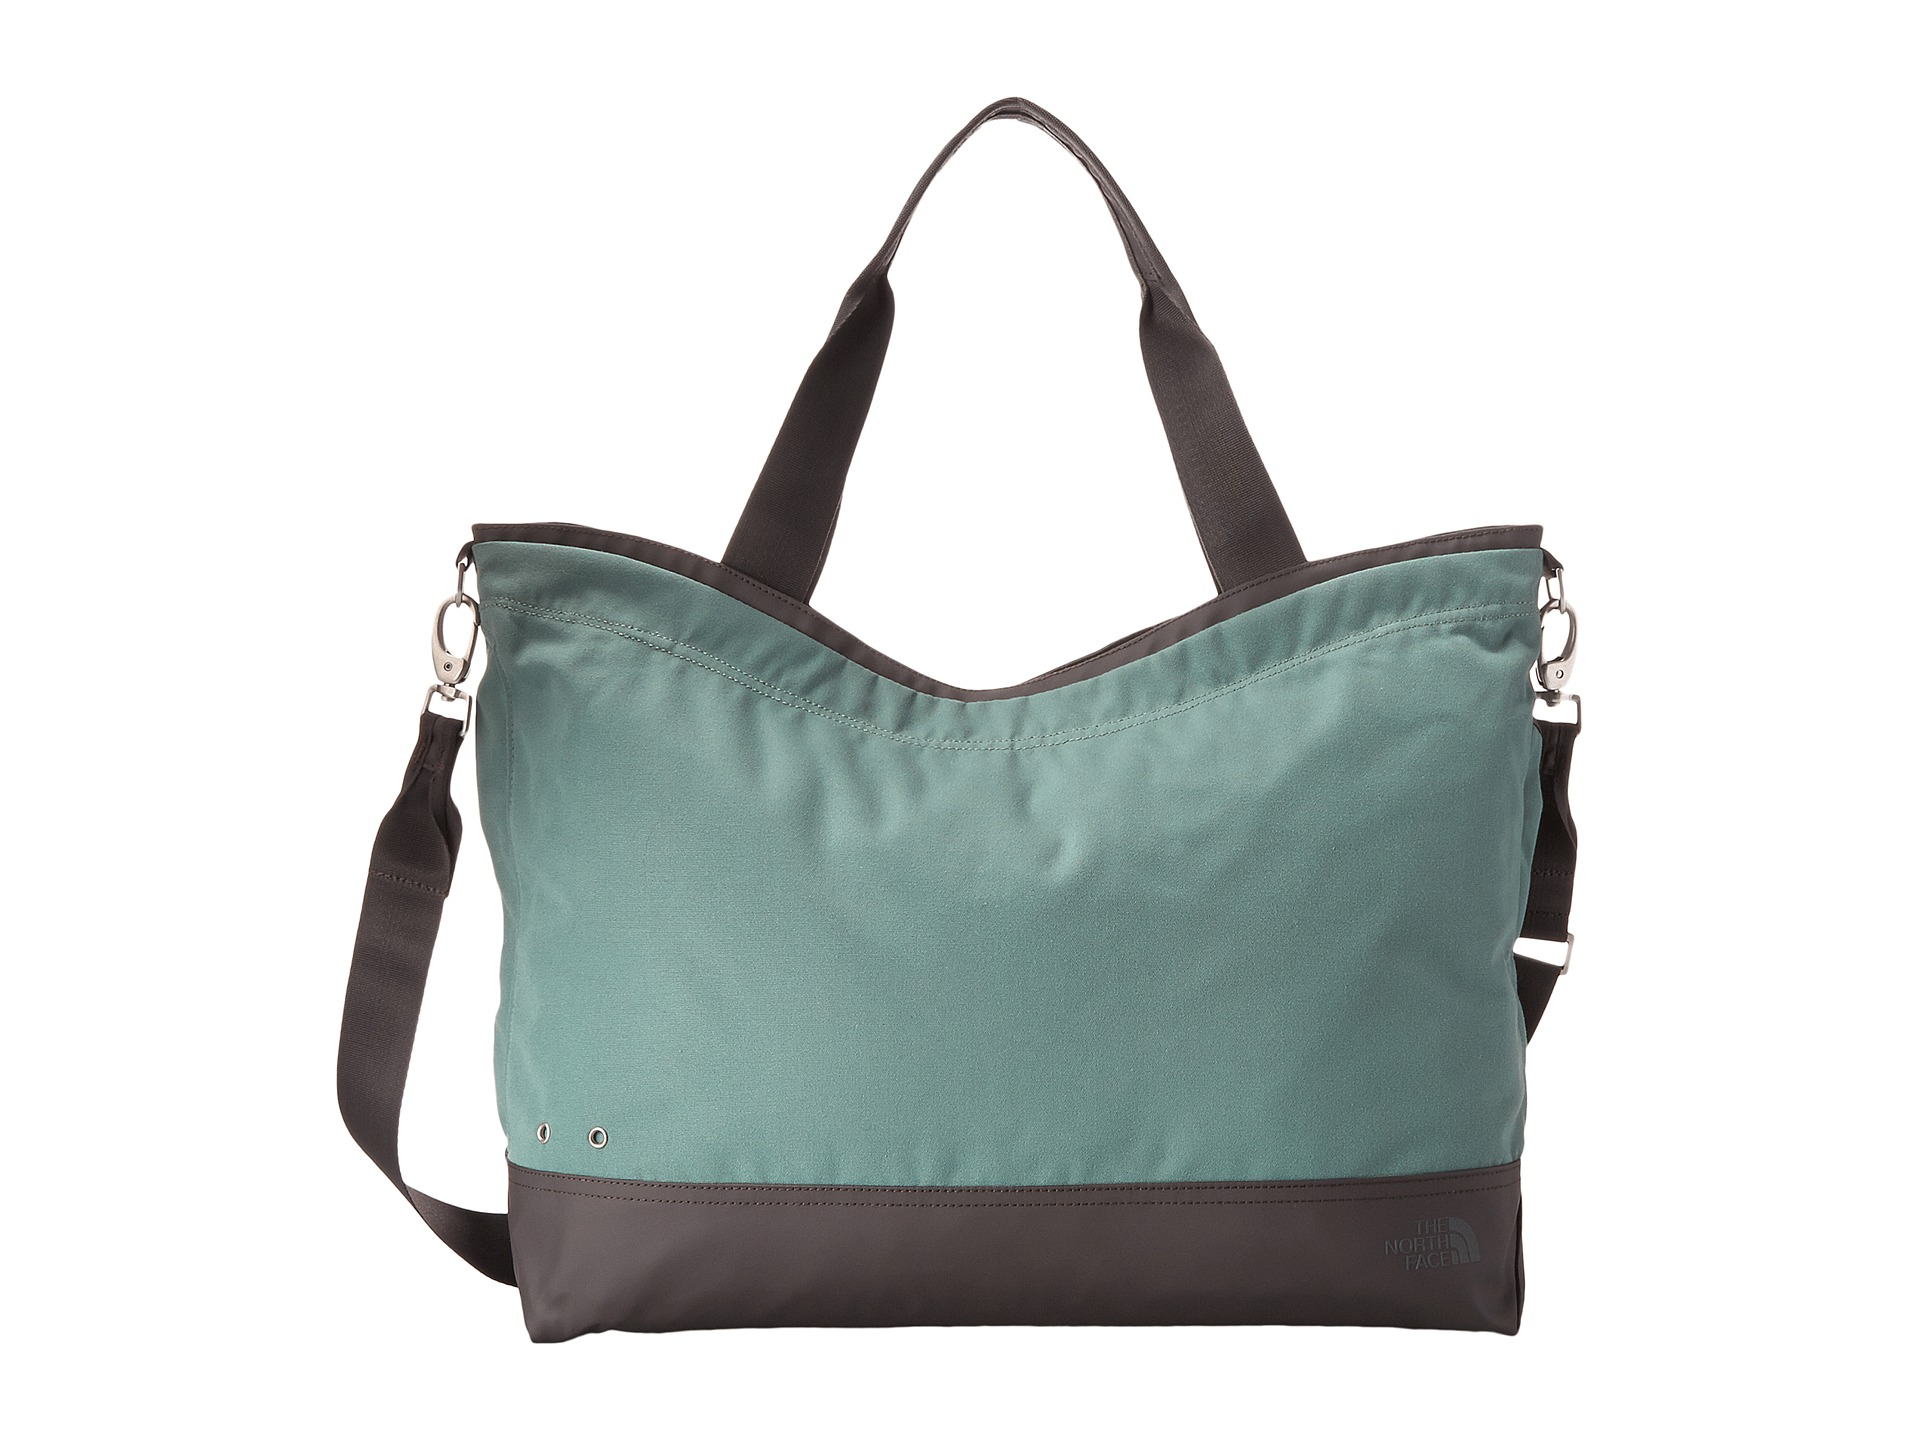 9e60f77169 Lyst - The North Face Laryssa Gym Tote in Green